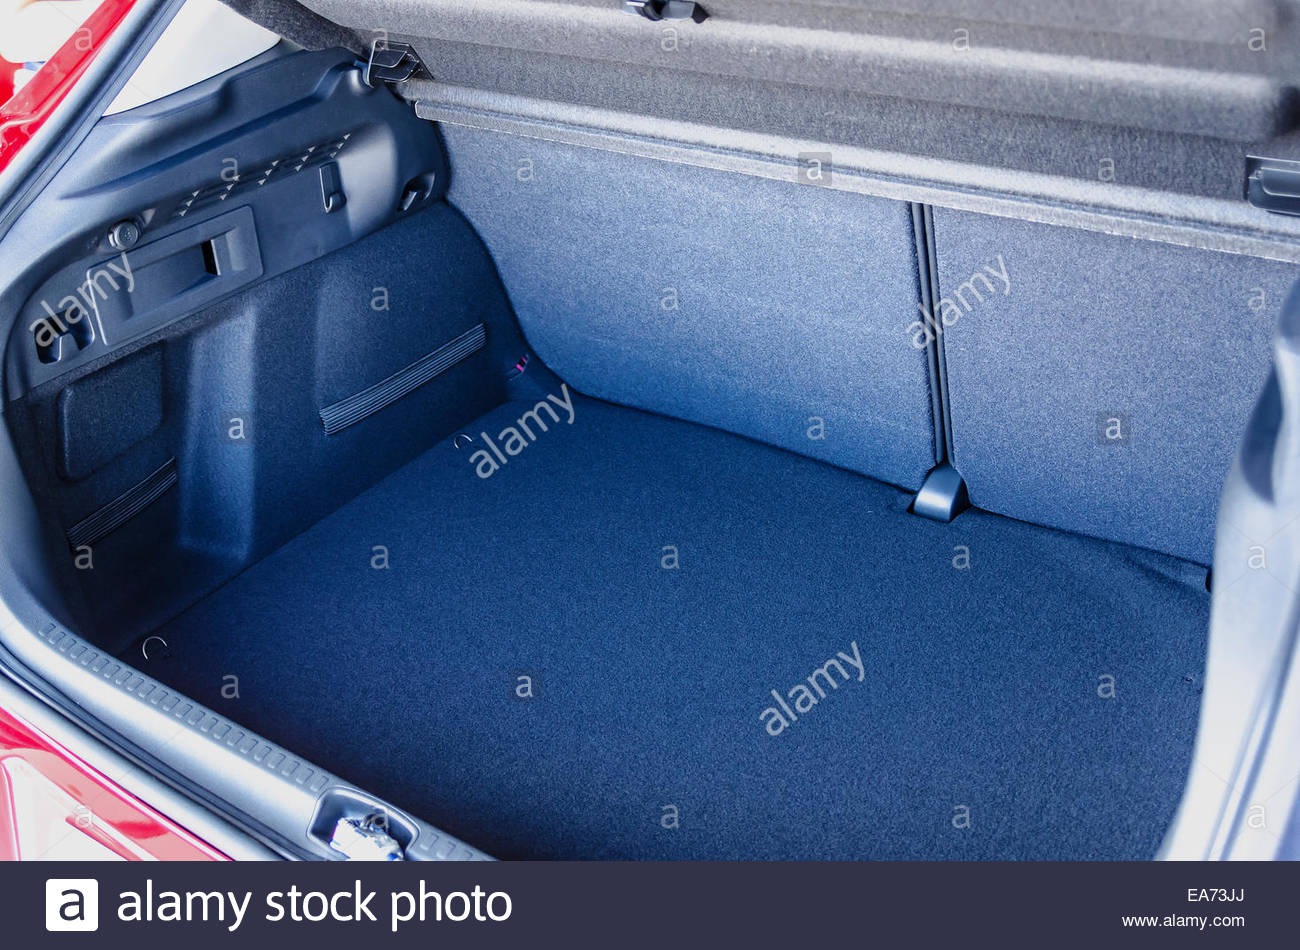 Empty car trunk with a lot of space for luggage and goods - Stock Image